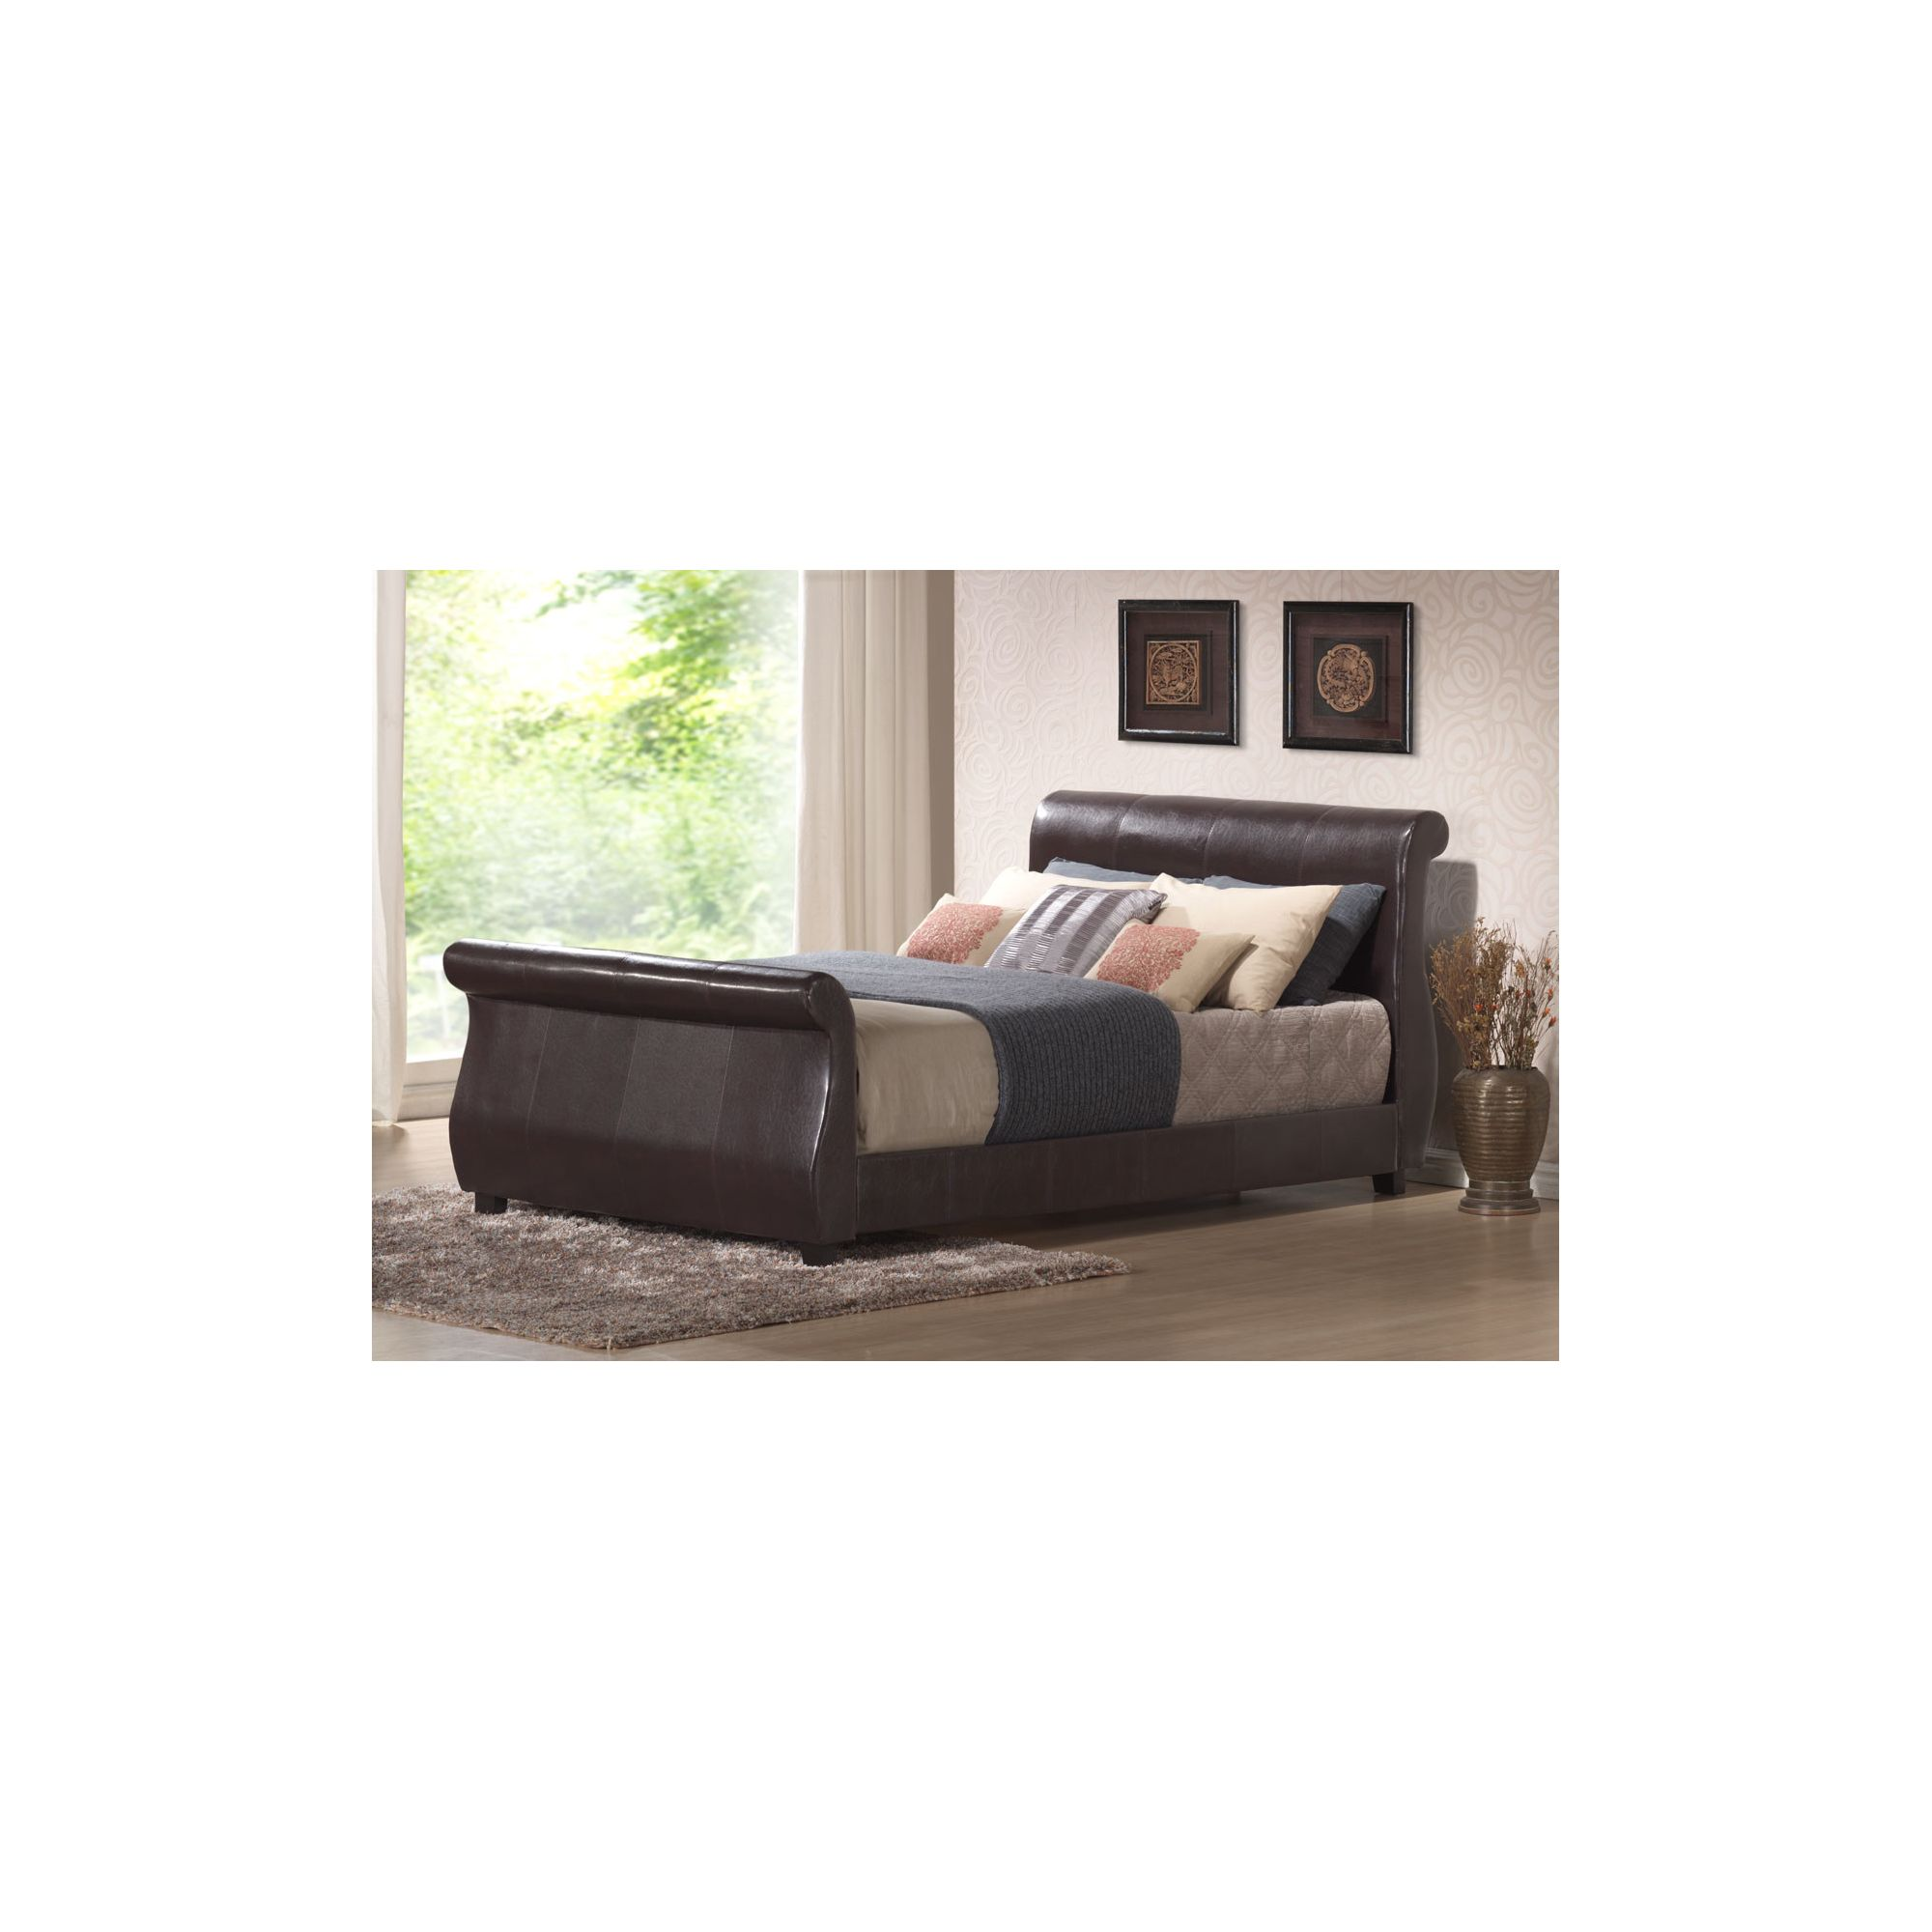 Interiors 2 suit Winchester Bedframe - Double - Brown at Tesco Direct